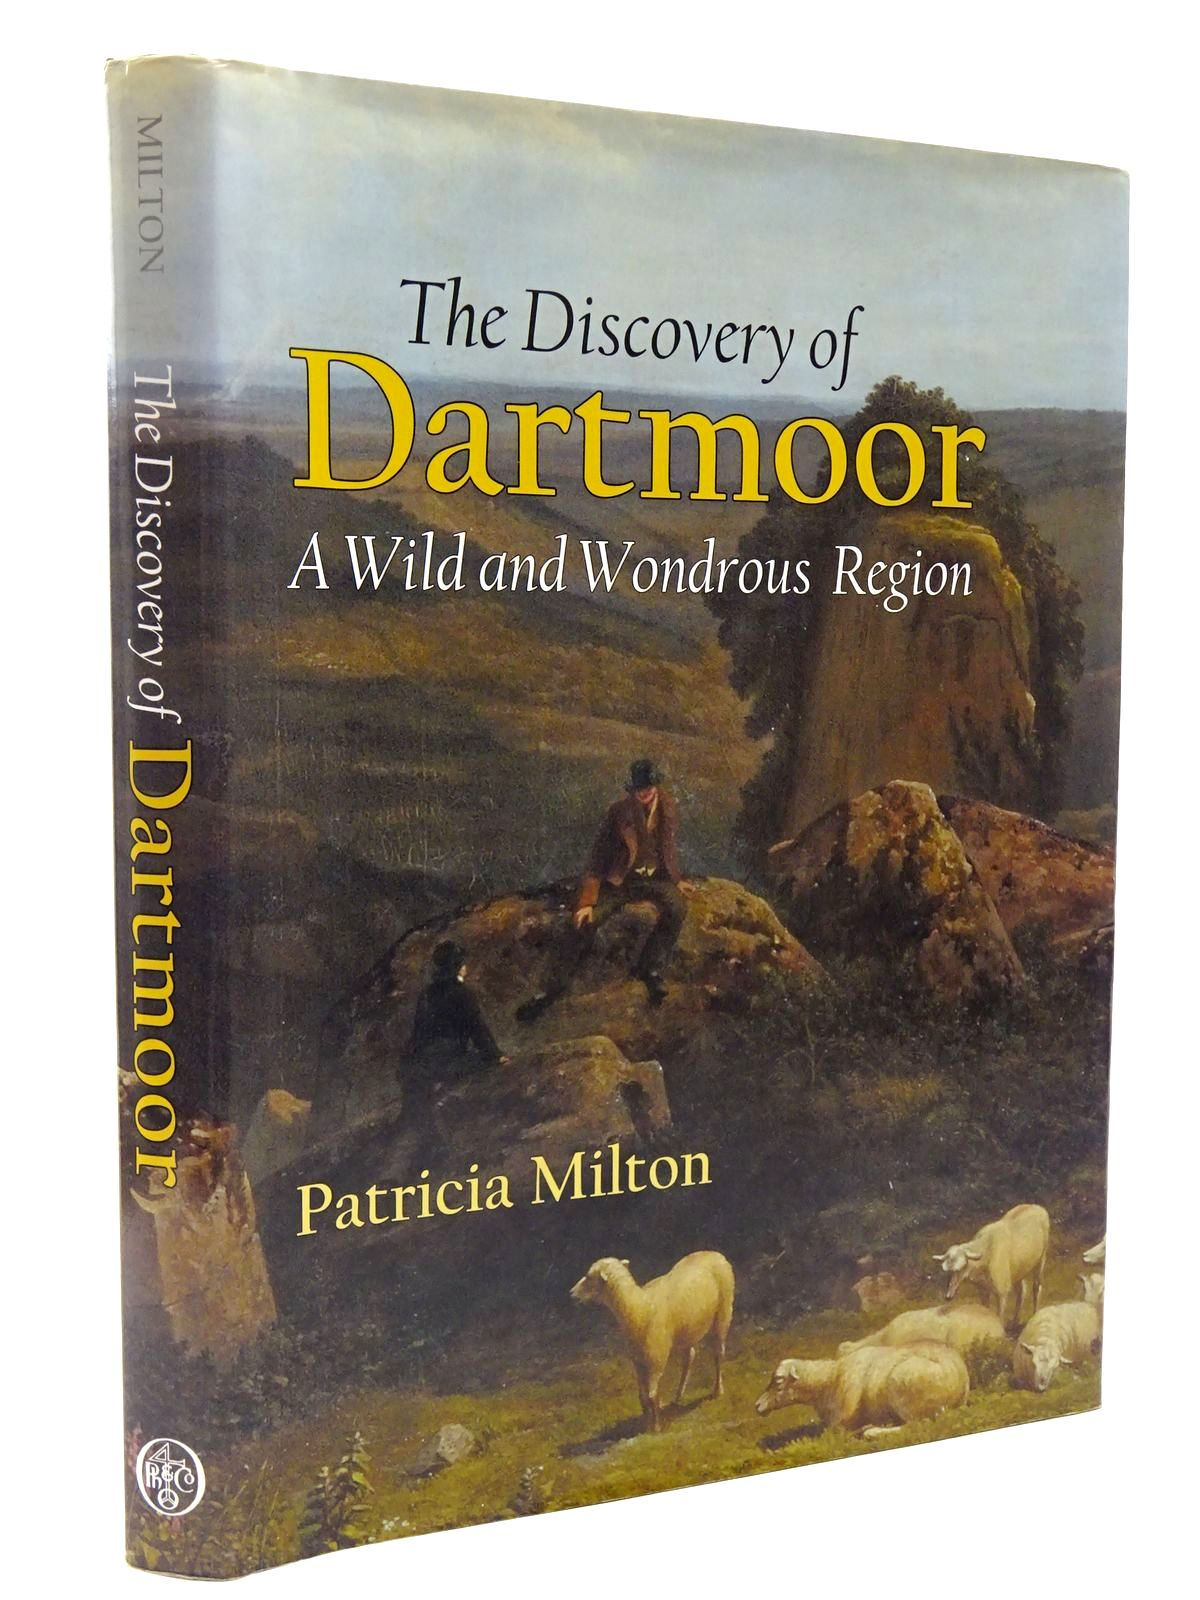 Photo of THE DISCOVERY OF DARTMOOR A WILD AND WONDROUS REGION written by Milton, Patricia published by Phillimore (STOCK CODE: 2129775)  for sale by Stella & Rose's Books